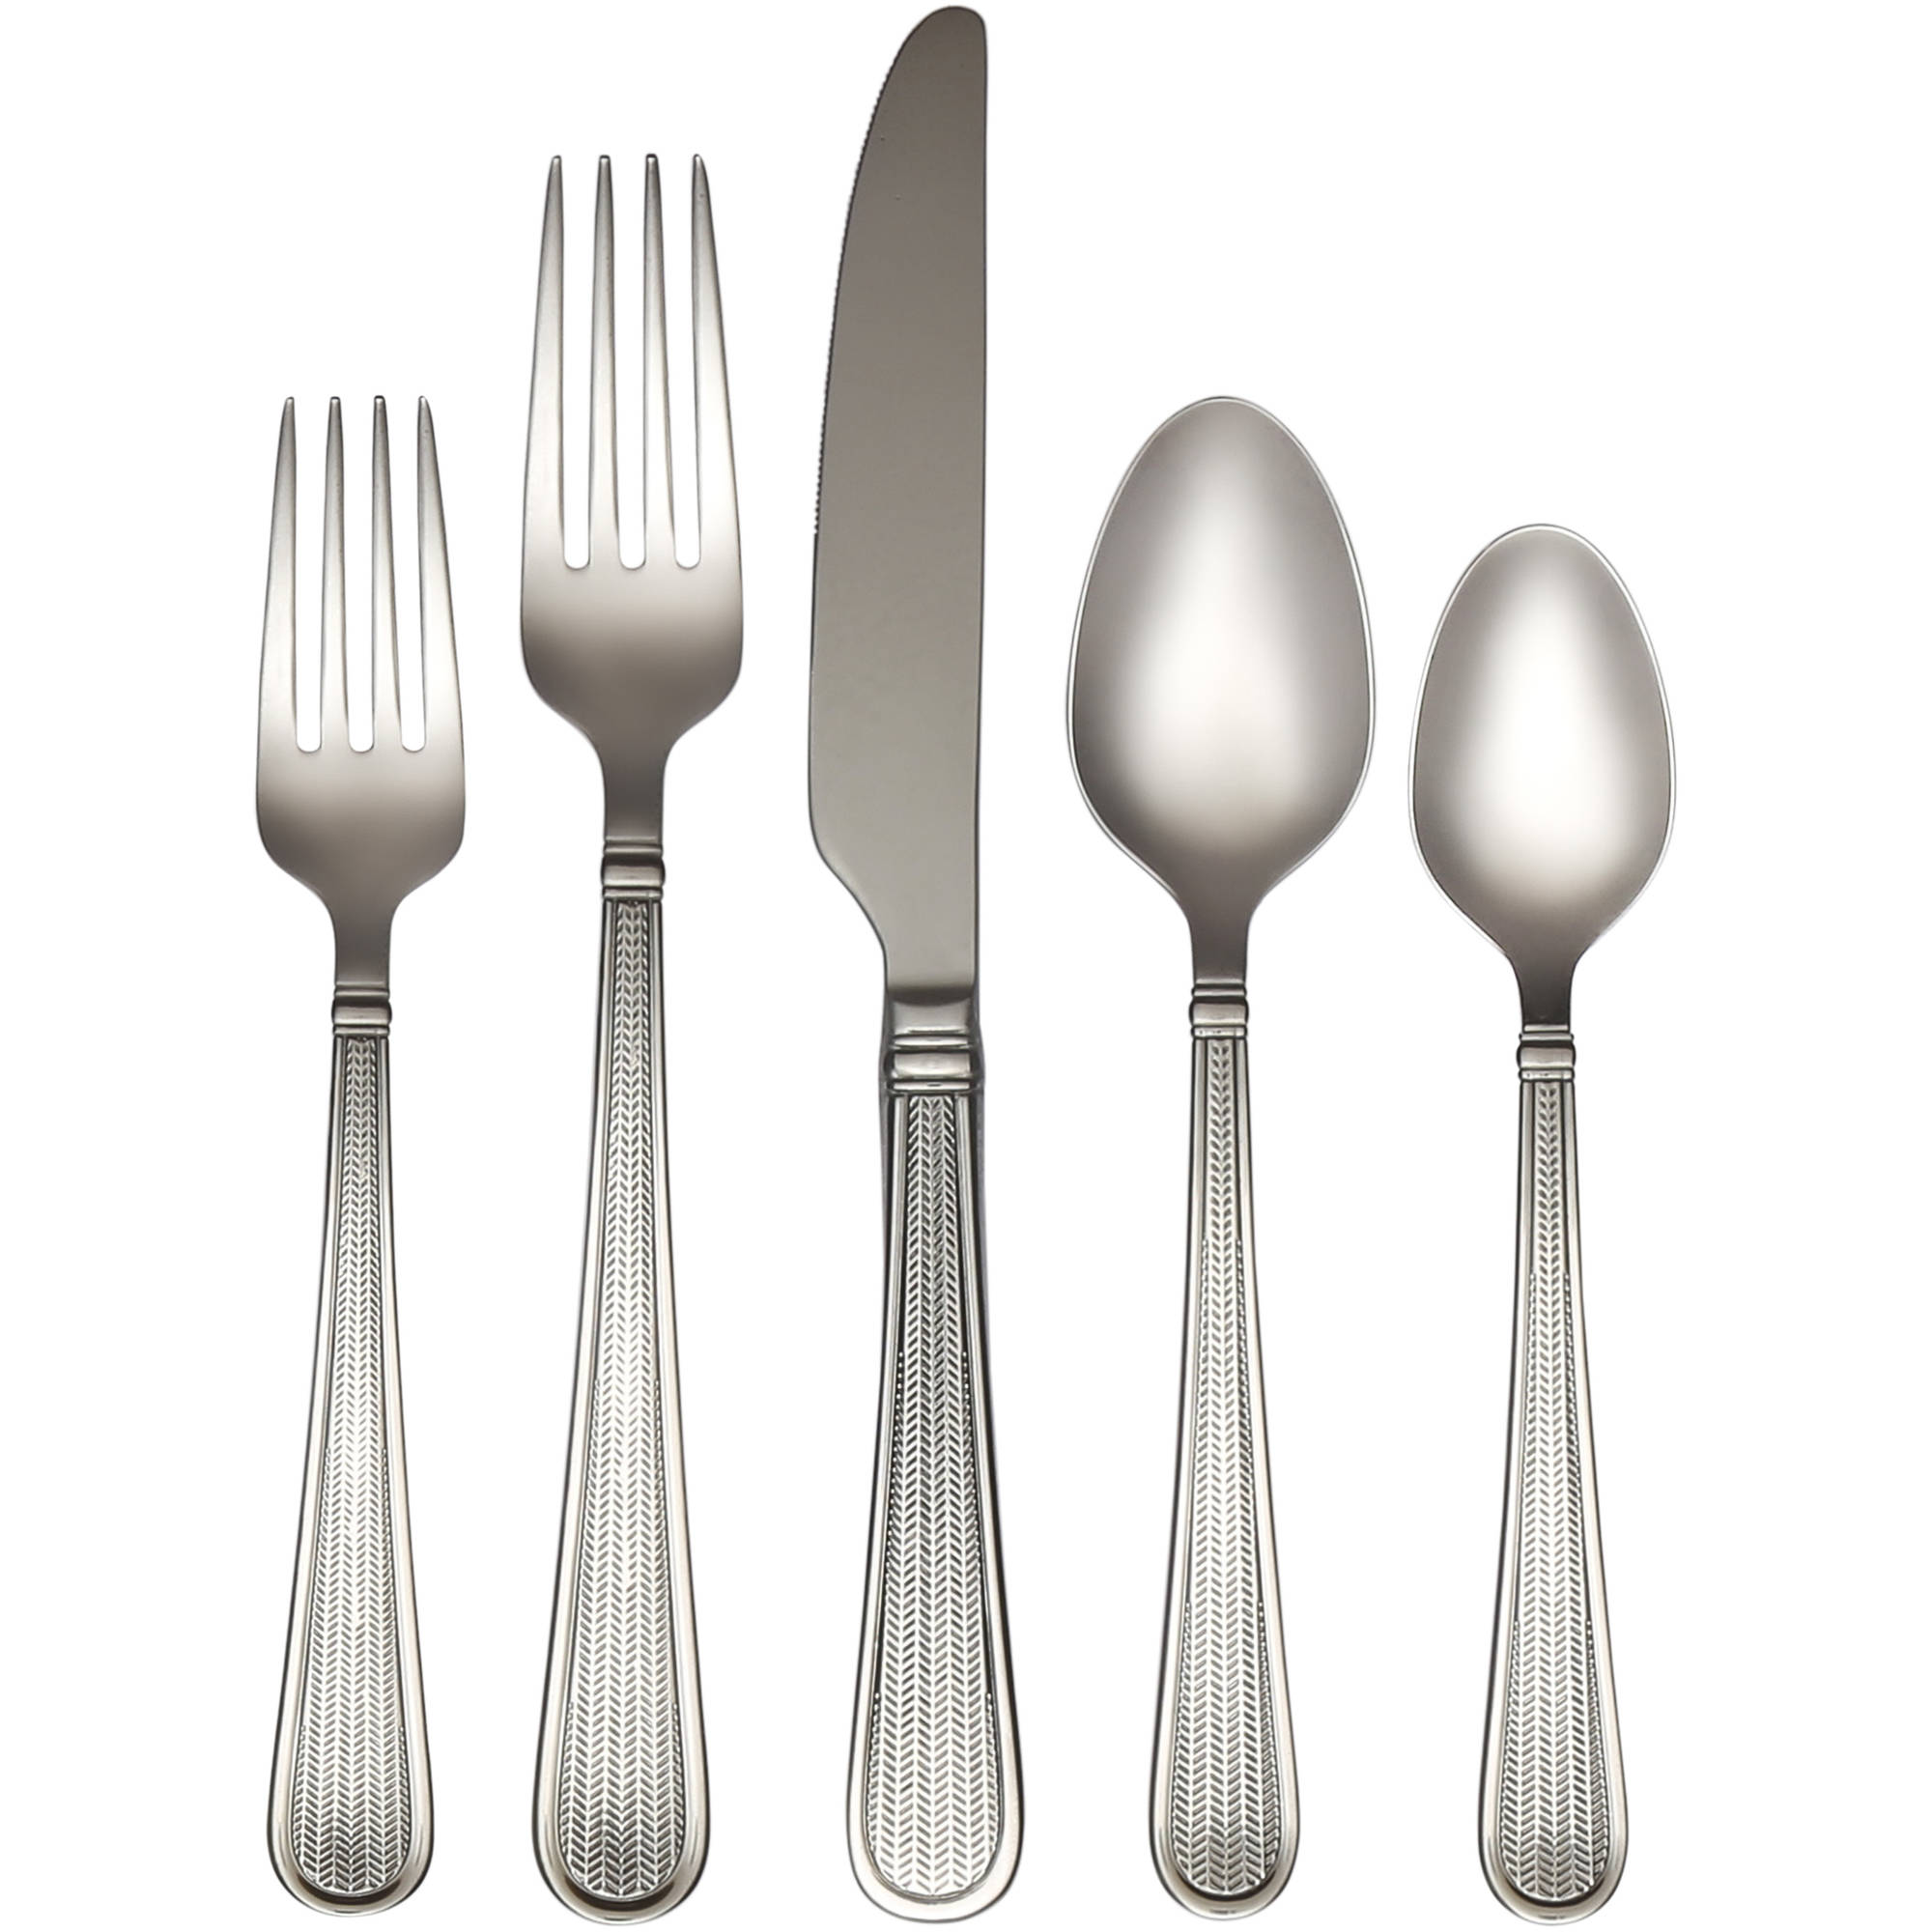 Cambridge Fairhaven Mirror 20-Piece Flatware Set by Cambridge